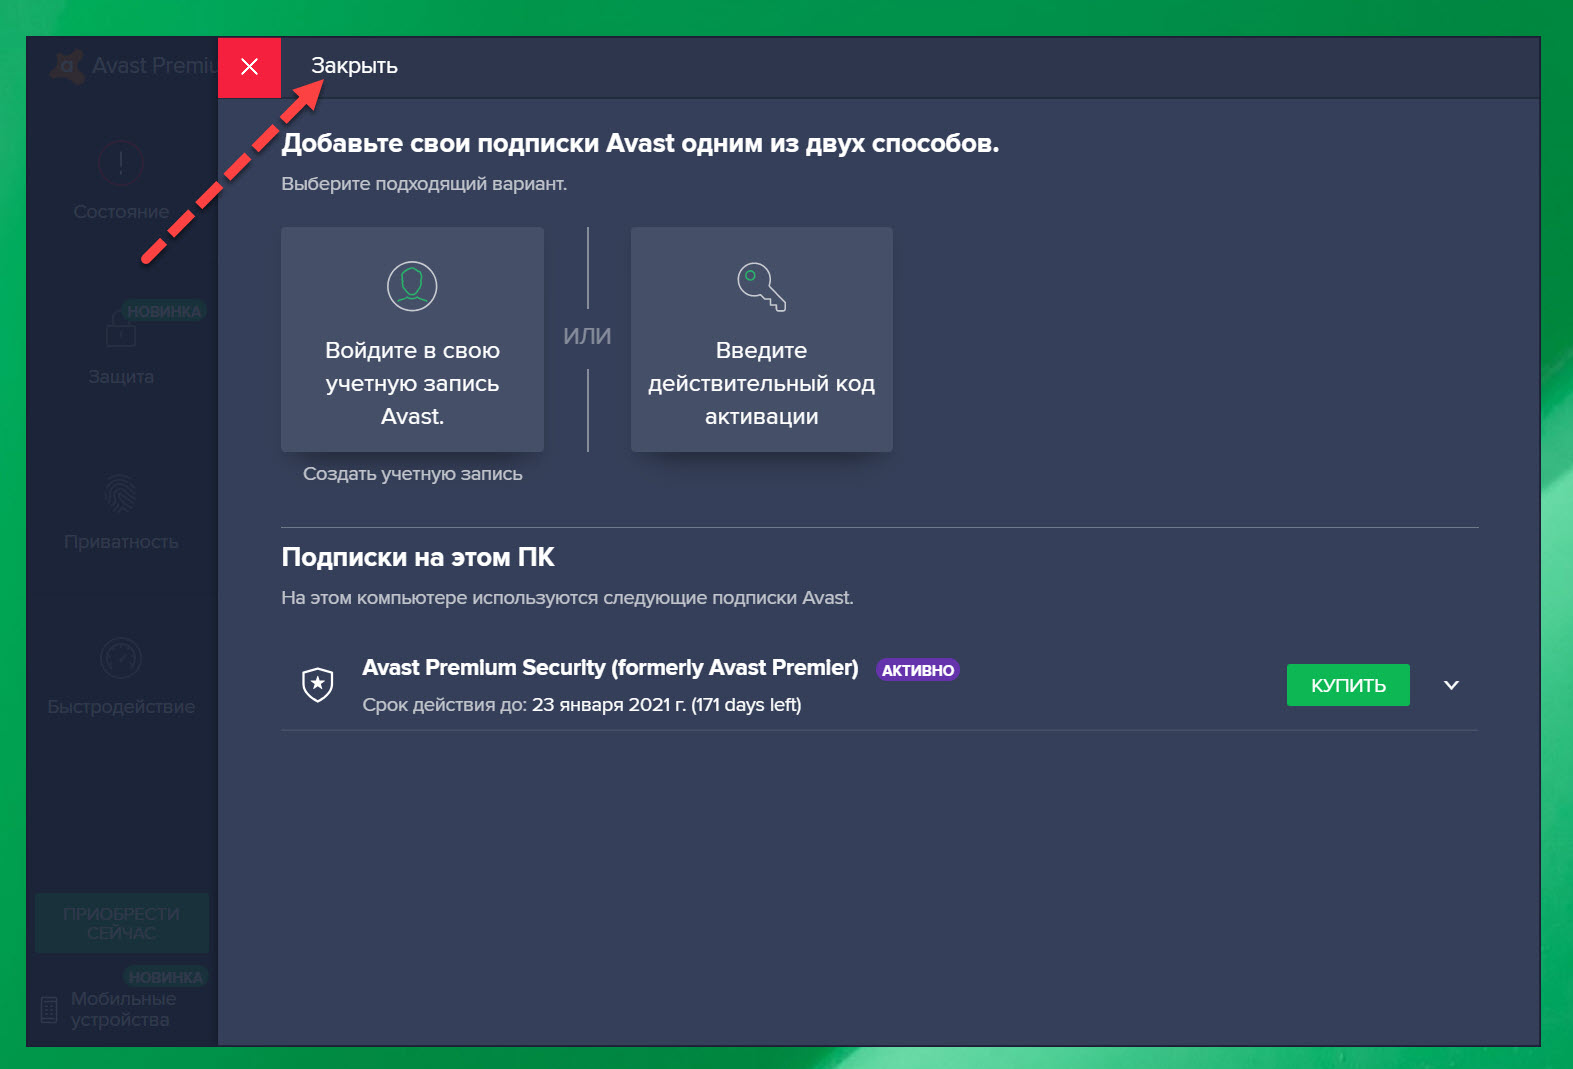 Buy Avast Premium Security key until 04.07.2021 and download